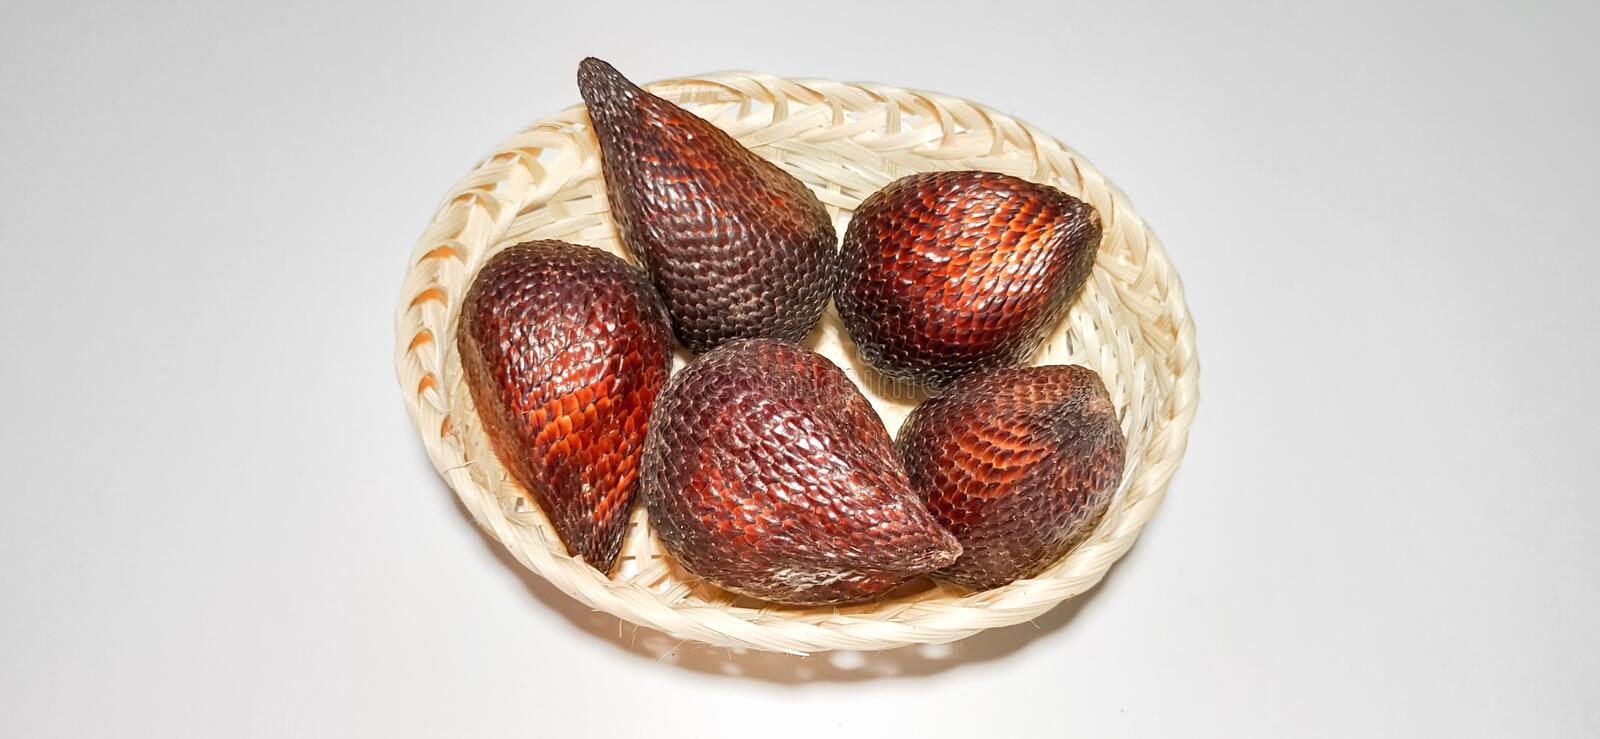 Salak snake fruit on rattan basket. Salak snake fruit is from Indonesian country good for healthy and antioxidant in rattan basket Isolated on white background stock image